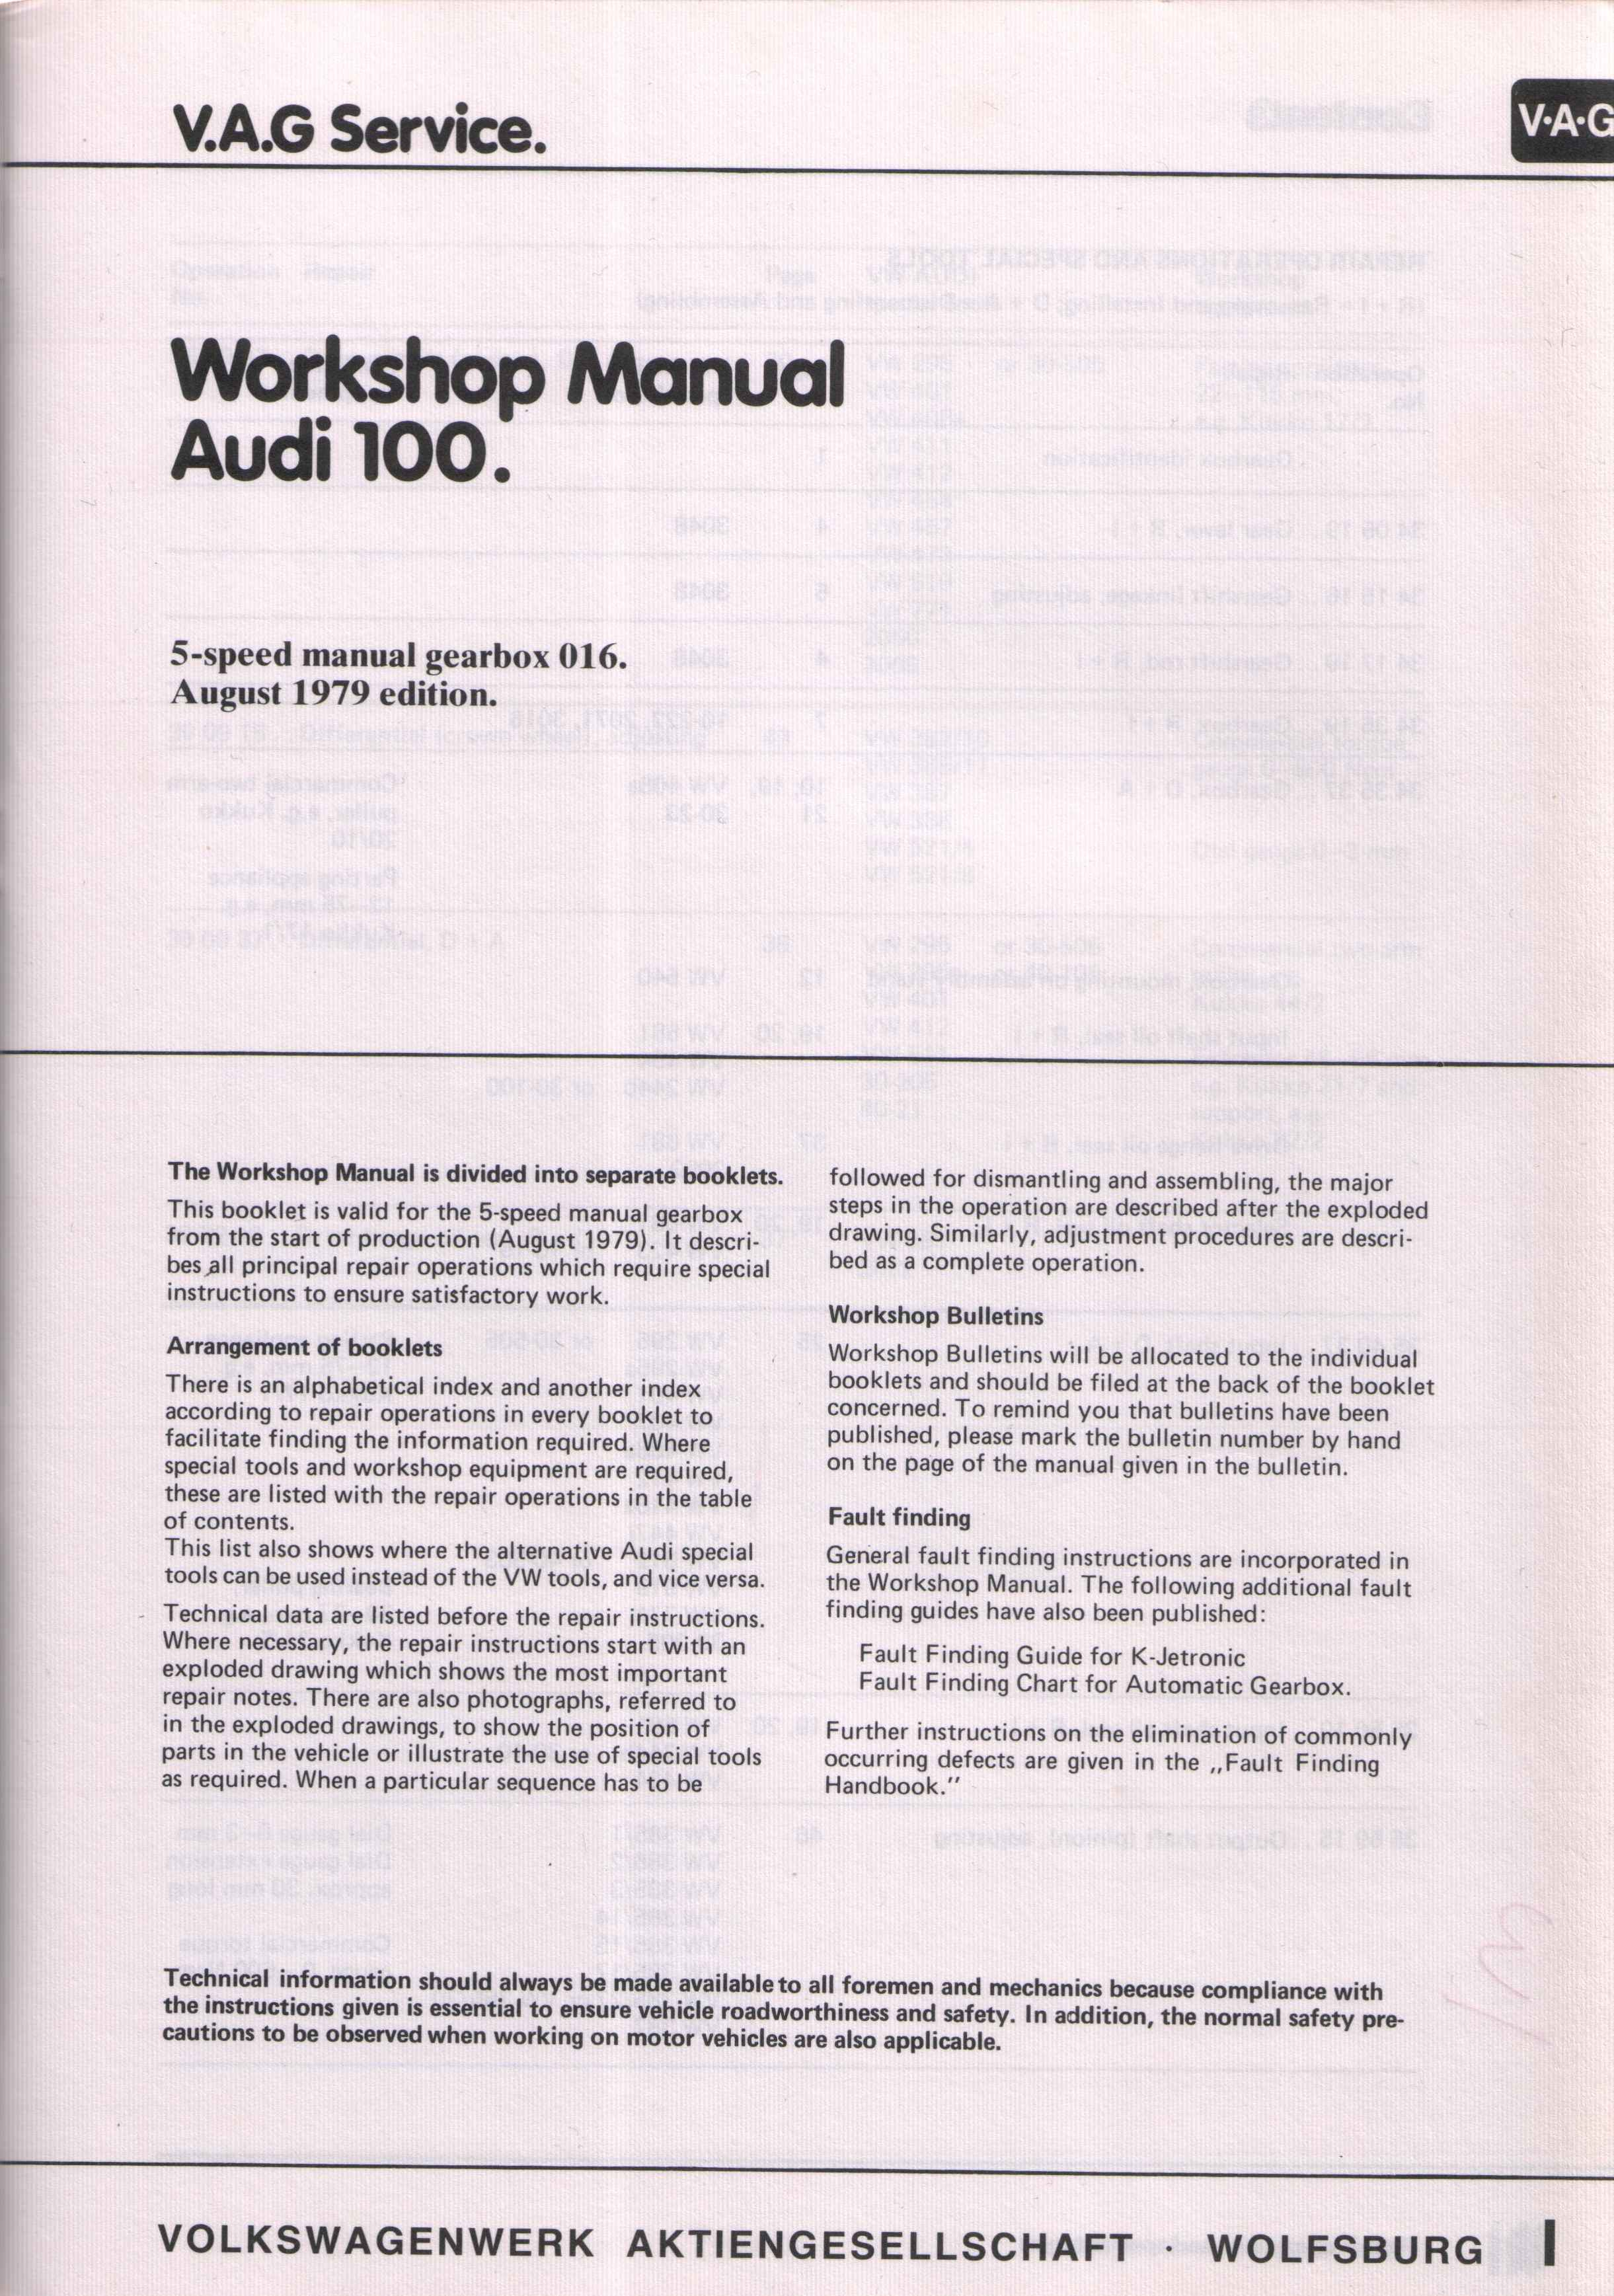 august 1979 audi 100 workshop manual for the 016 5 speed gearbox rh t85q com audi 100 c3 workshop manual audi 100 c4 service manual pdf